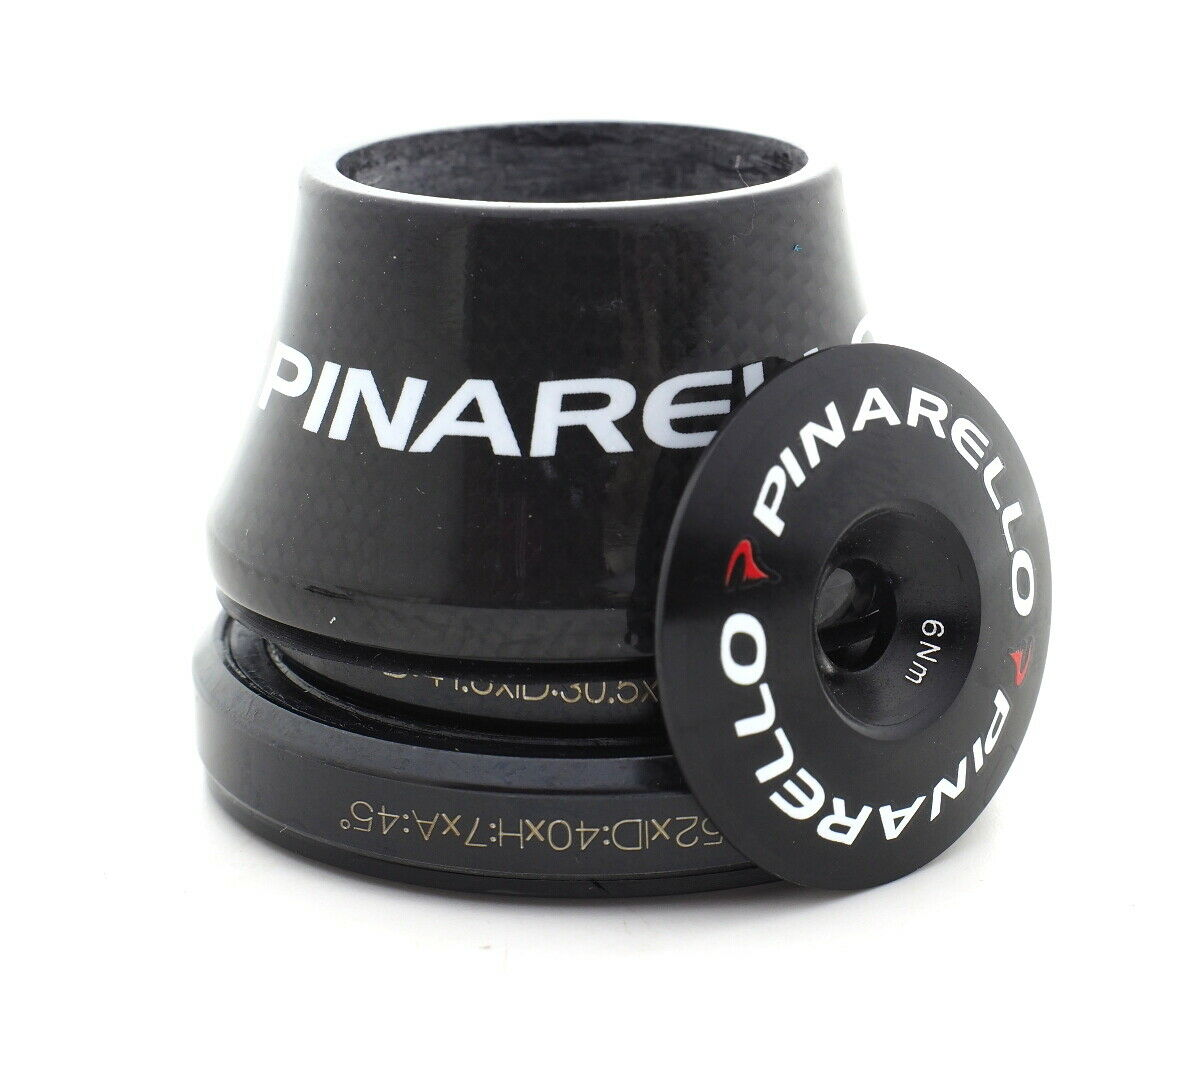 Pinarello Most Round HEADSET FULL CARBON 1K Weave 25mm Top  Cap  classic fashion